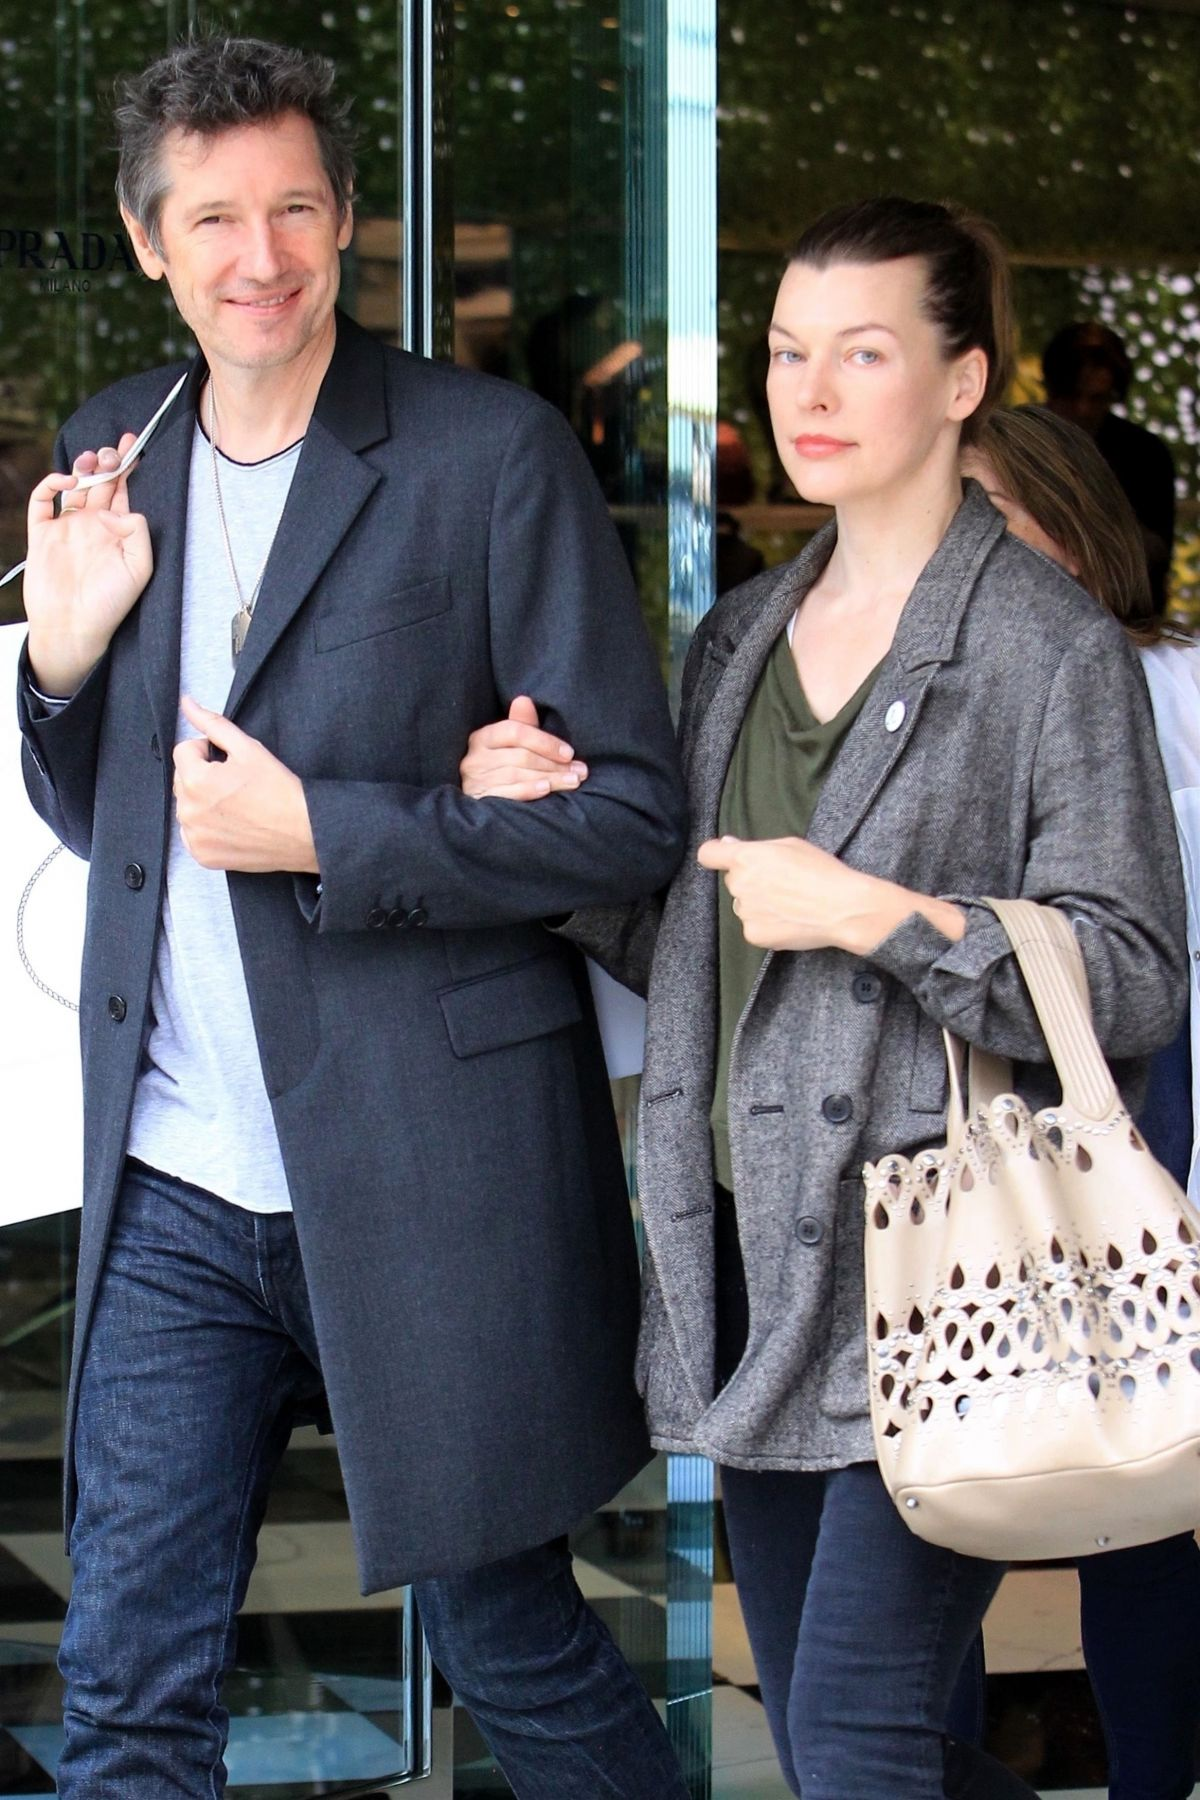 Milla Jovovich with her husband Paul W. S. Anderson shopping as they leave the Prada store in Beverly Hills